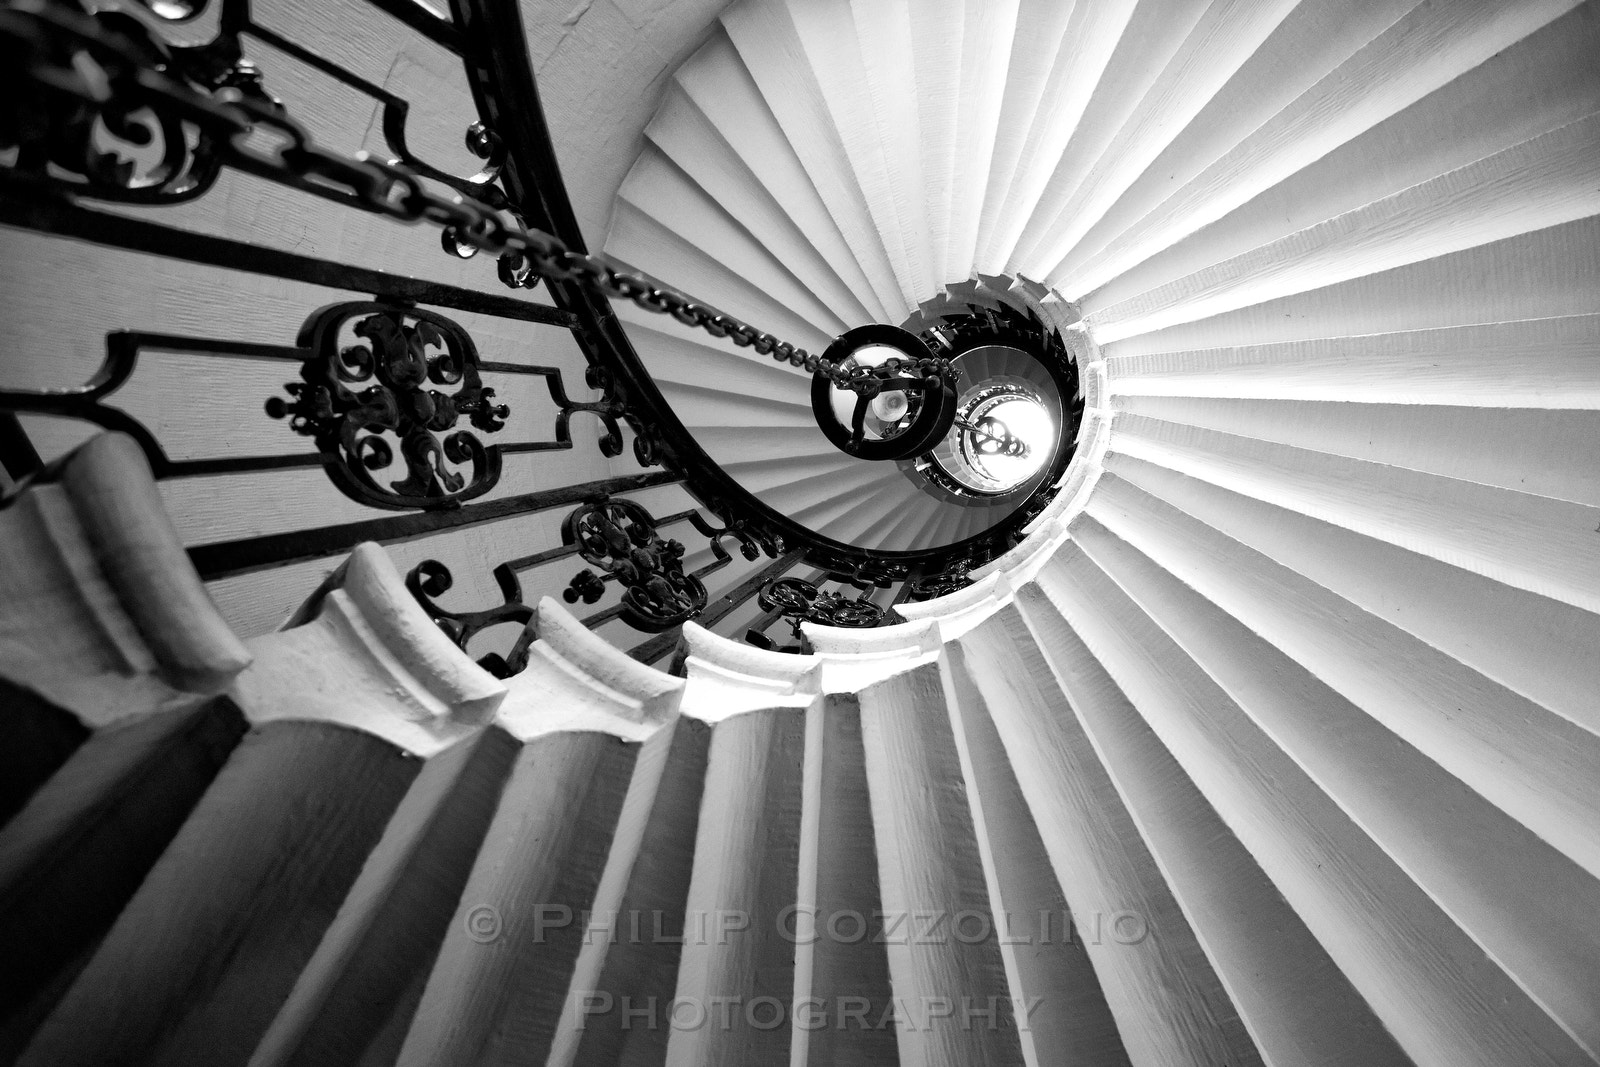 Photograph Stairs by Philip Cozzolino on 500px